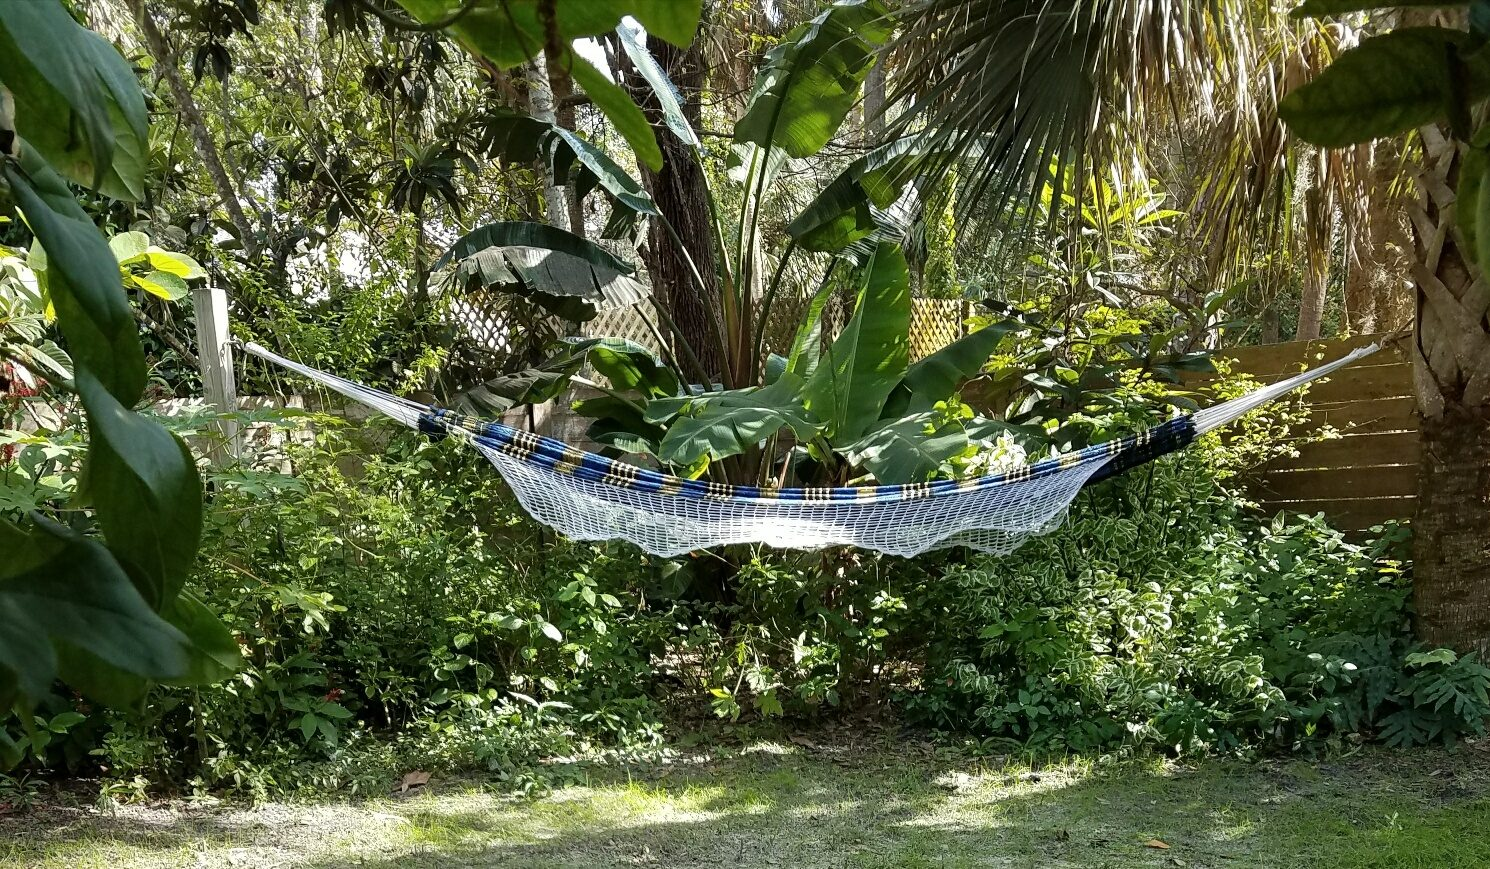 Another Day In The Hammock